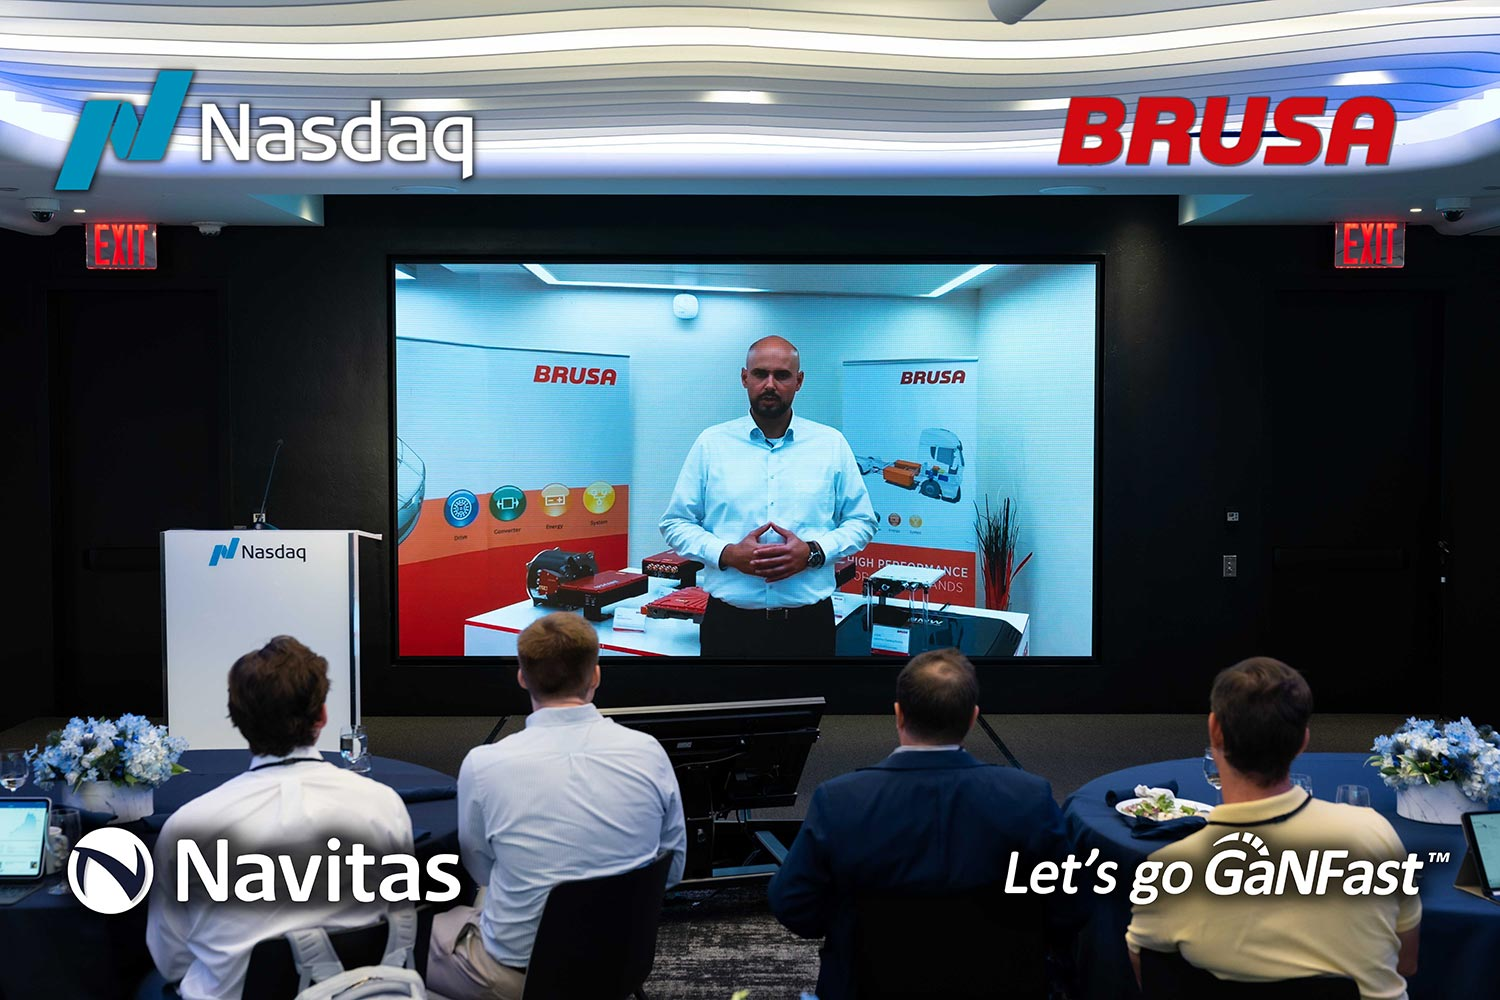 BRUSA goes GaNFast™ to Reduce the CO2 Footprint in their Electromobility Charger Products